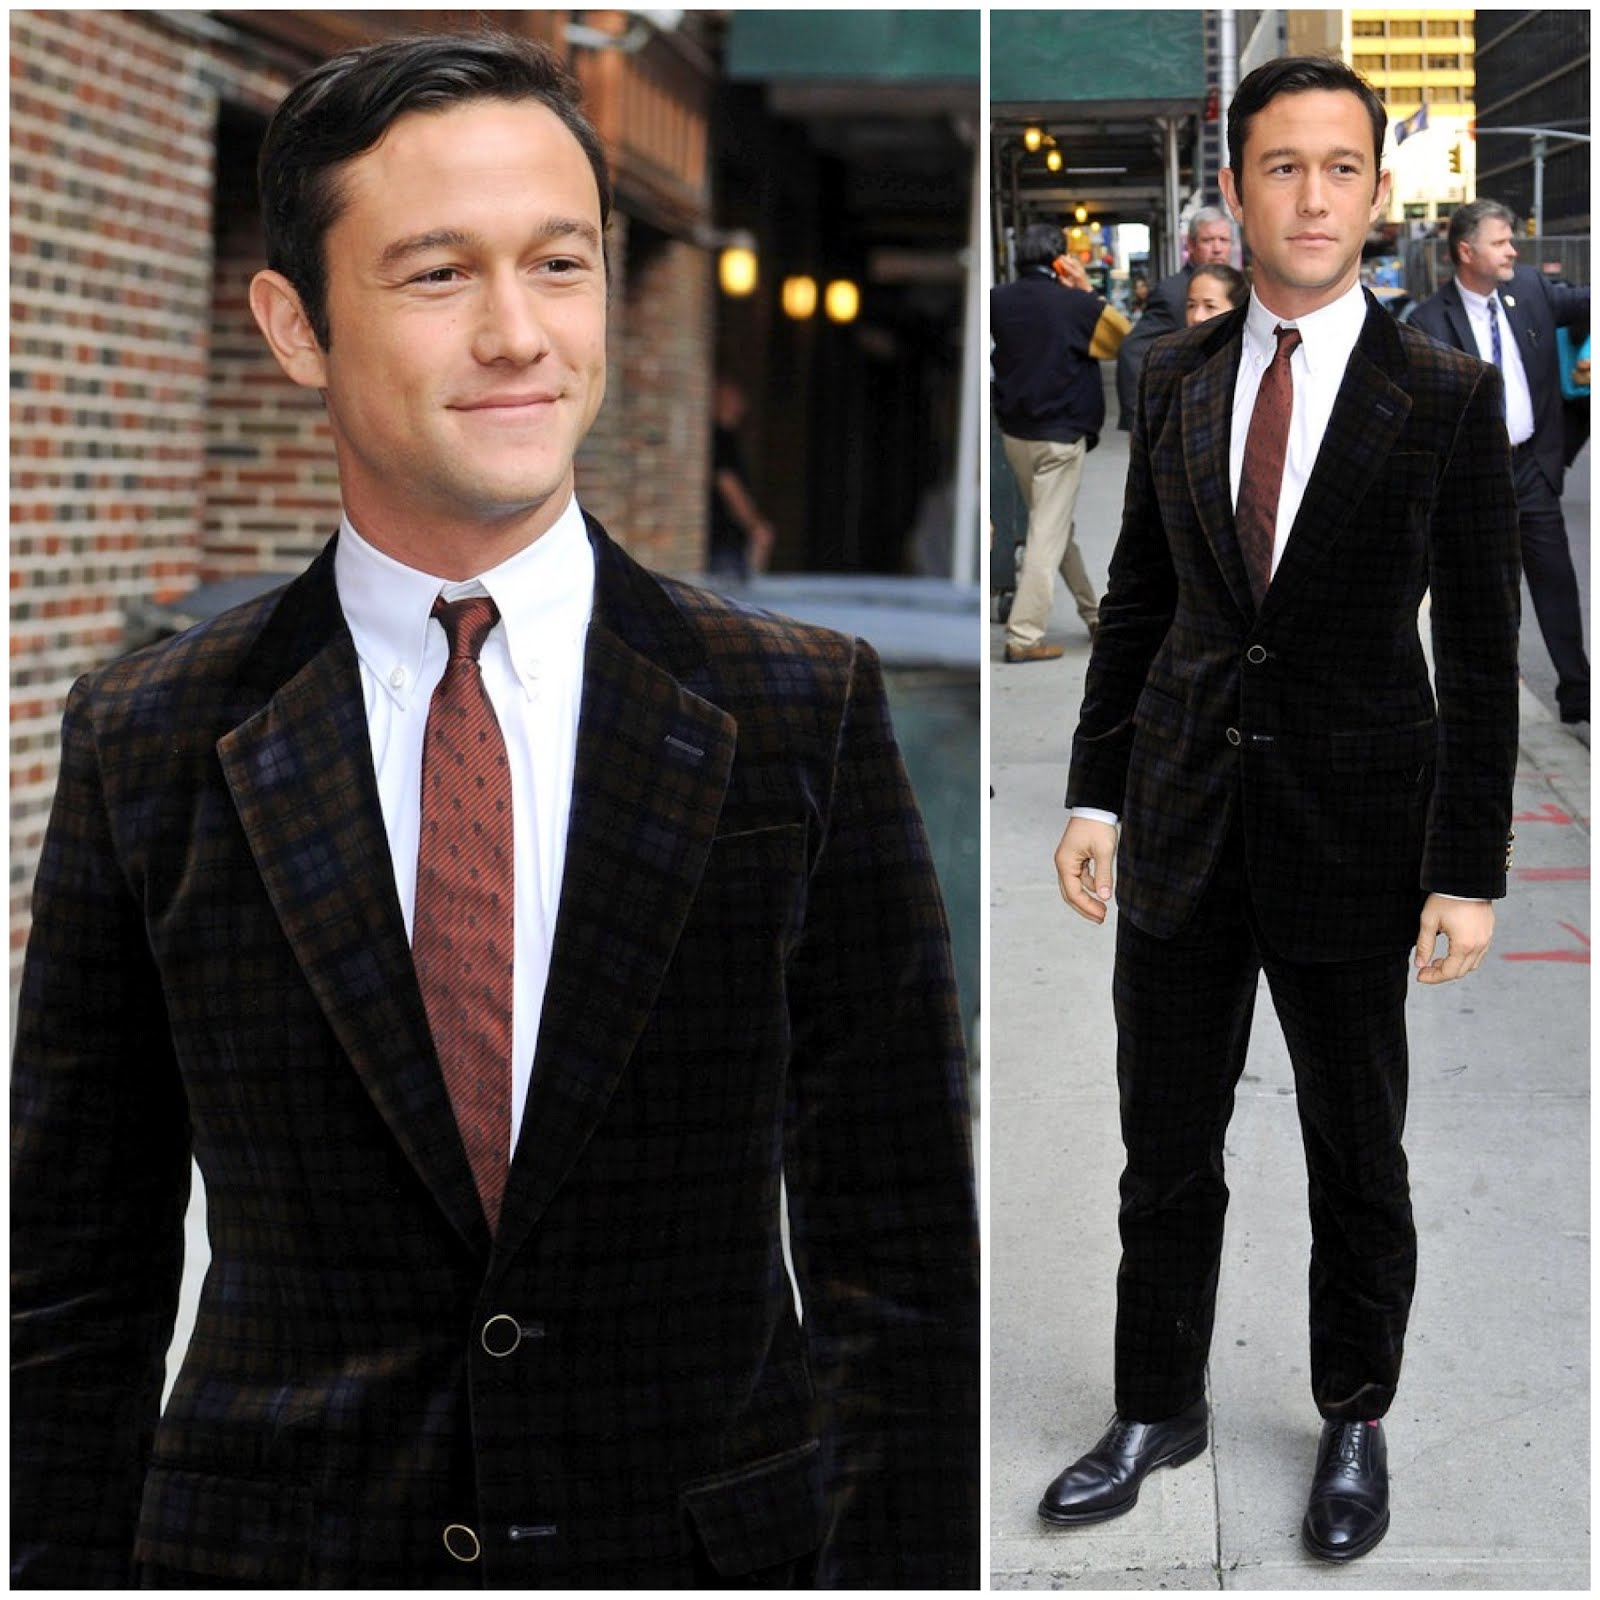 00O00 London Menswear Blog Joseph Gordon Levitt arrives ahead of his appearance on the